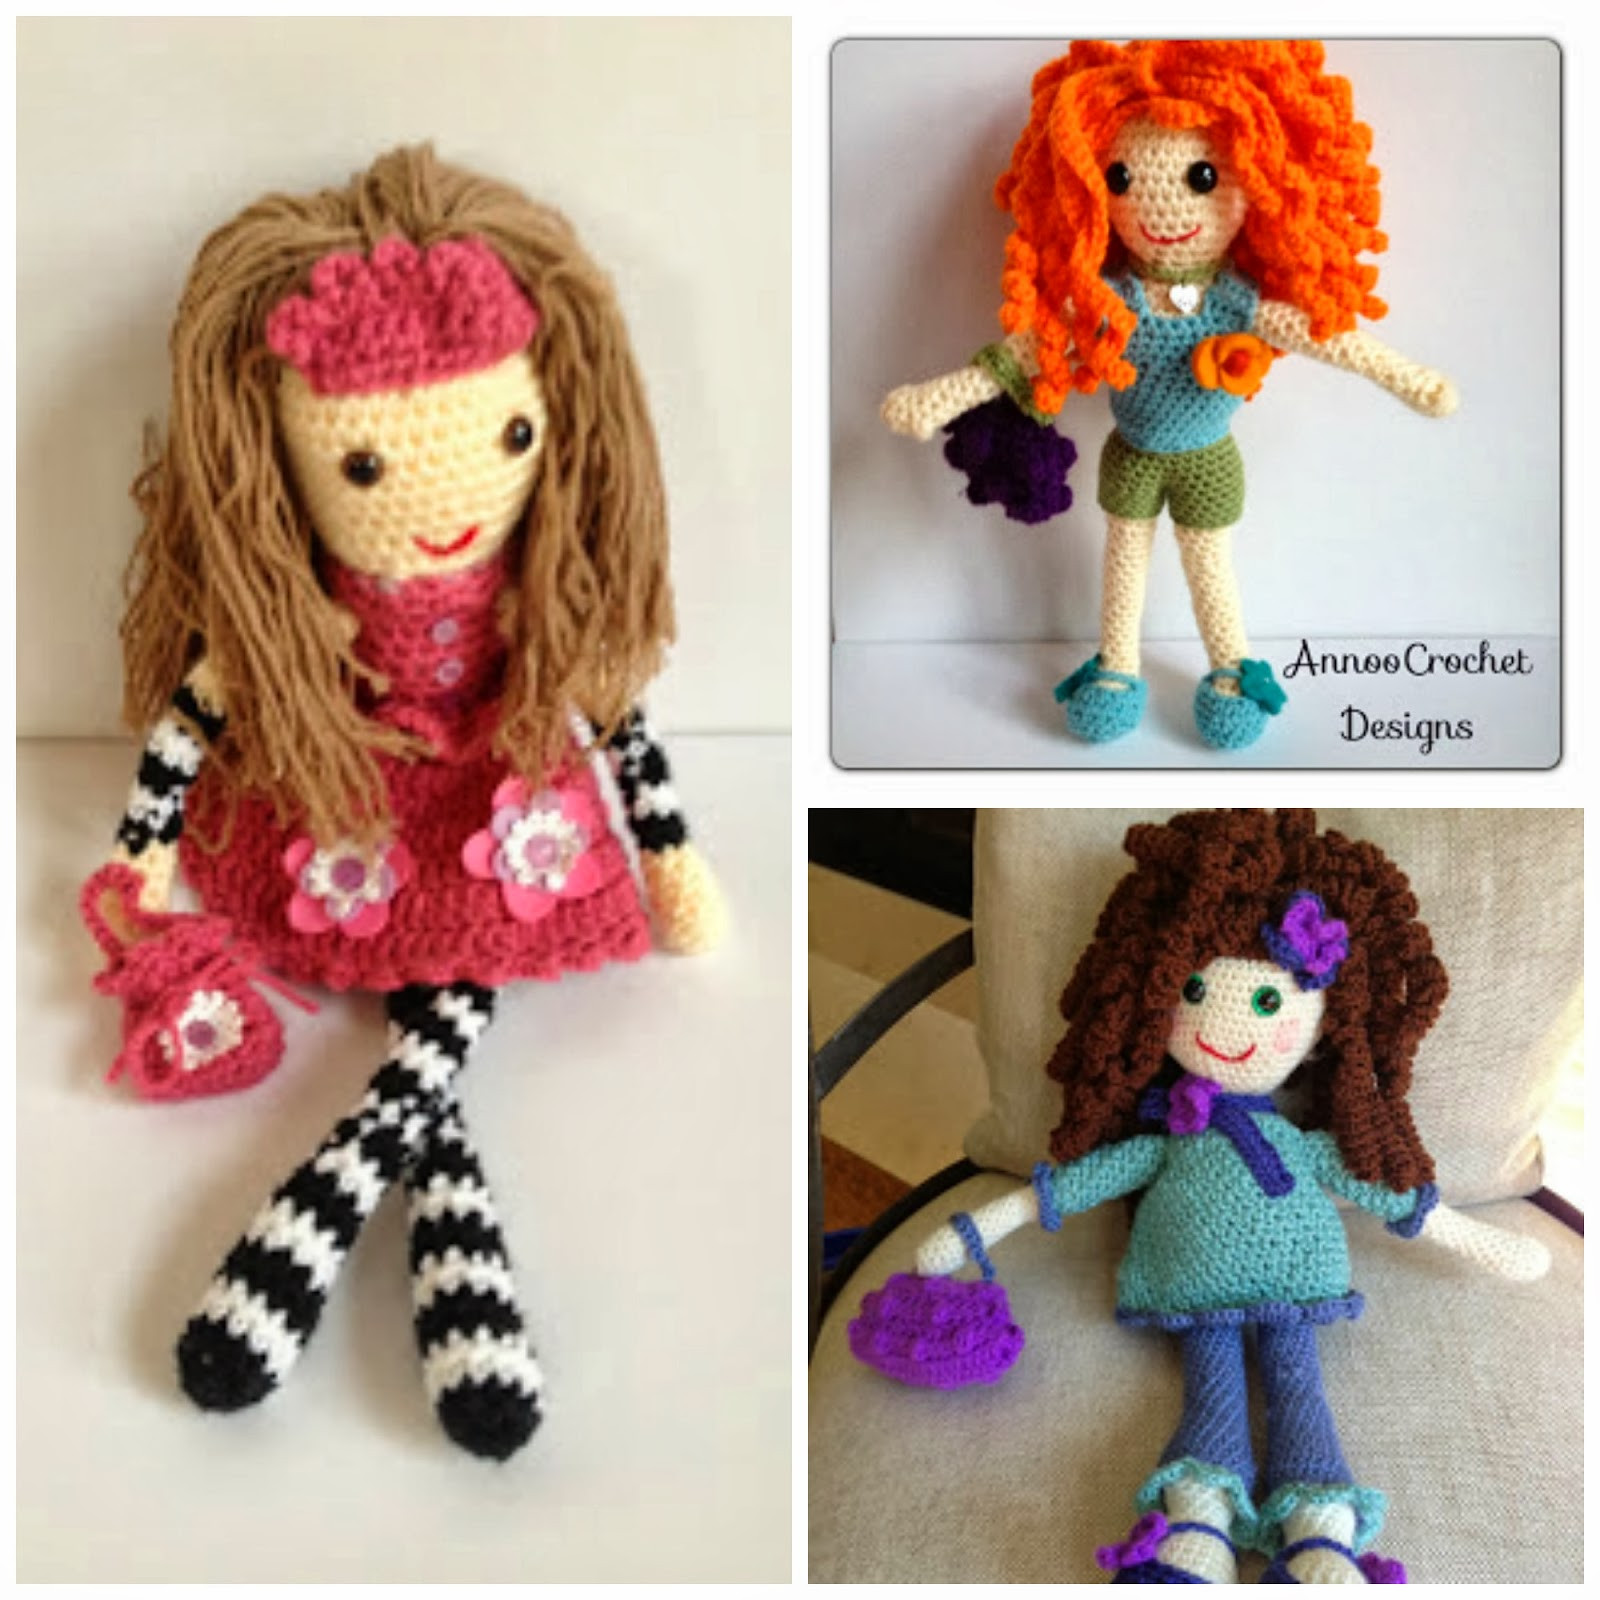 Crochet Doll Awesome 20 Free Crochet Doll Patterns Free Crochet Patterns and Of Delightful 47 Pictures Crochet Doll